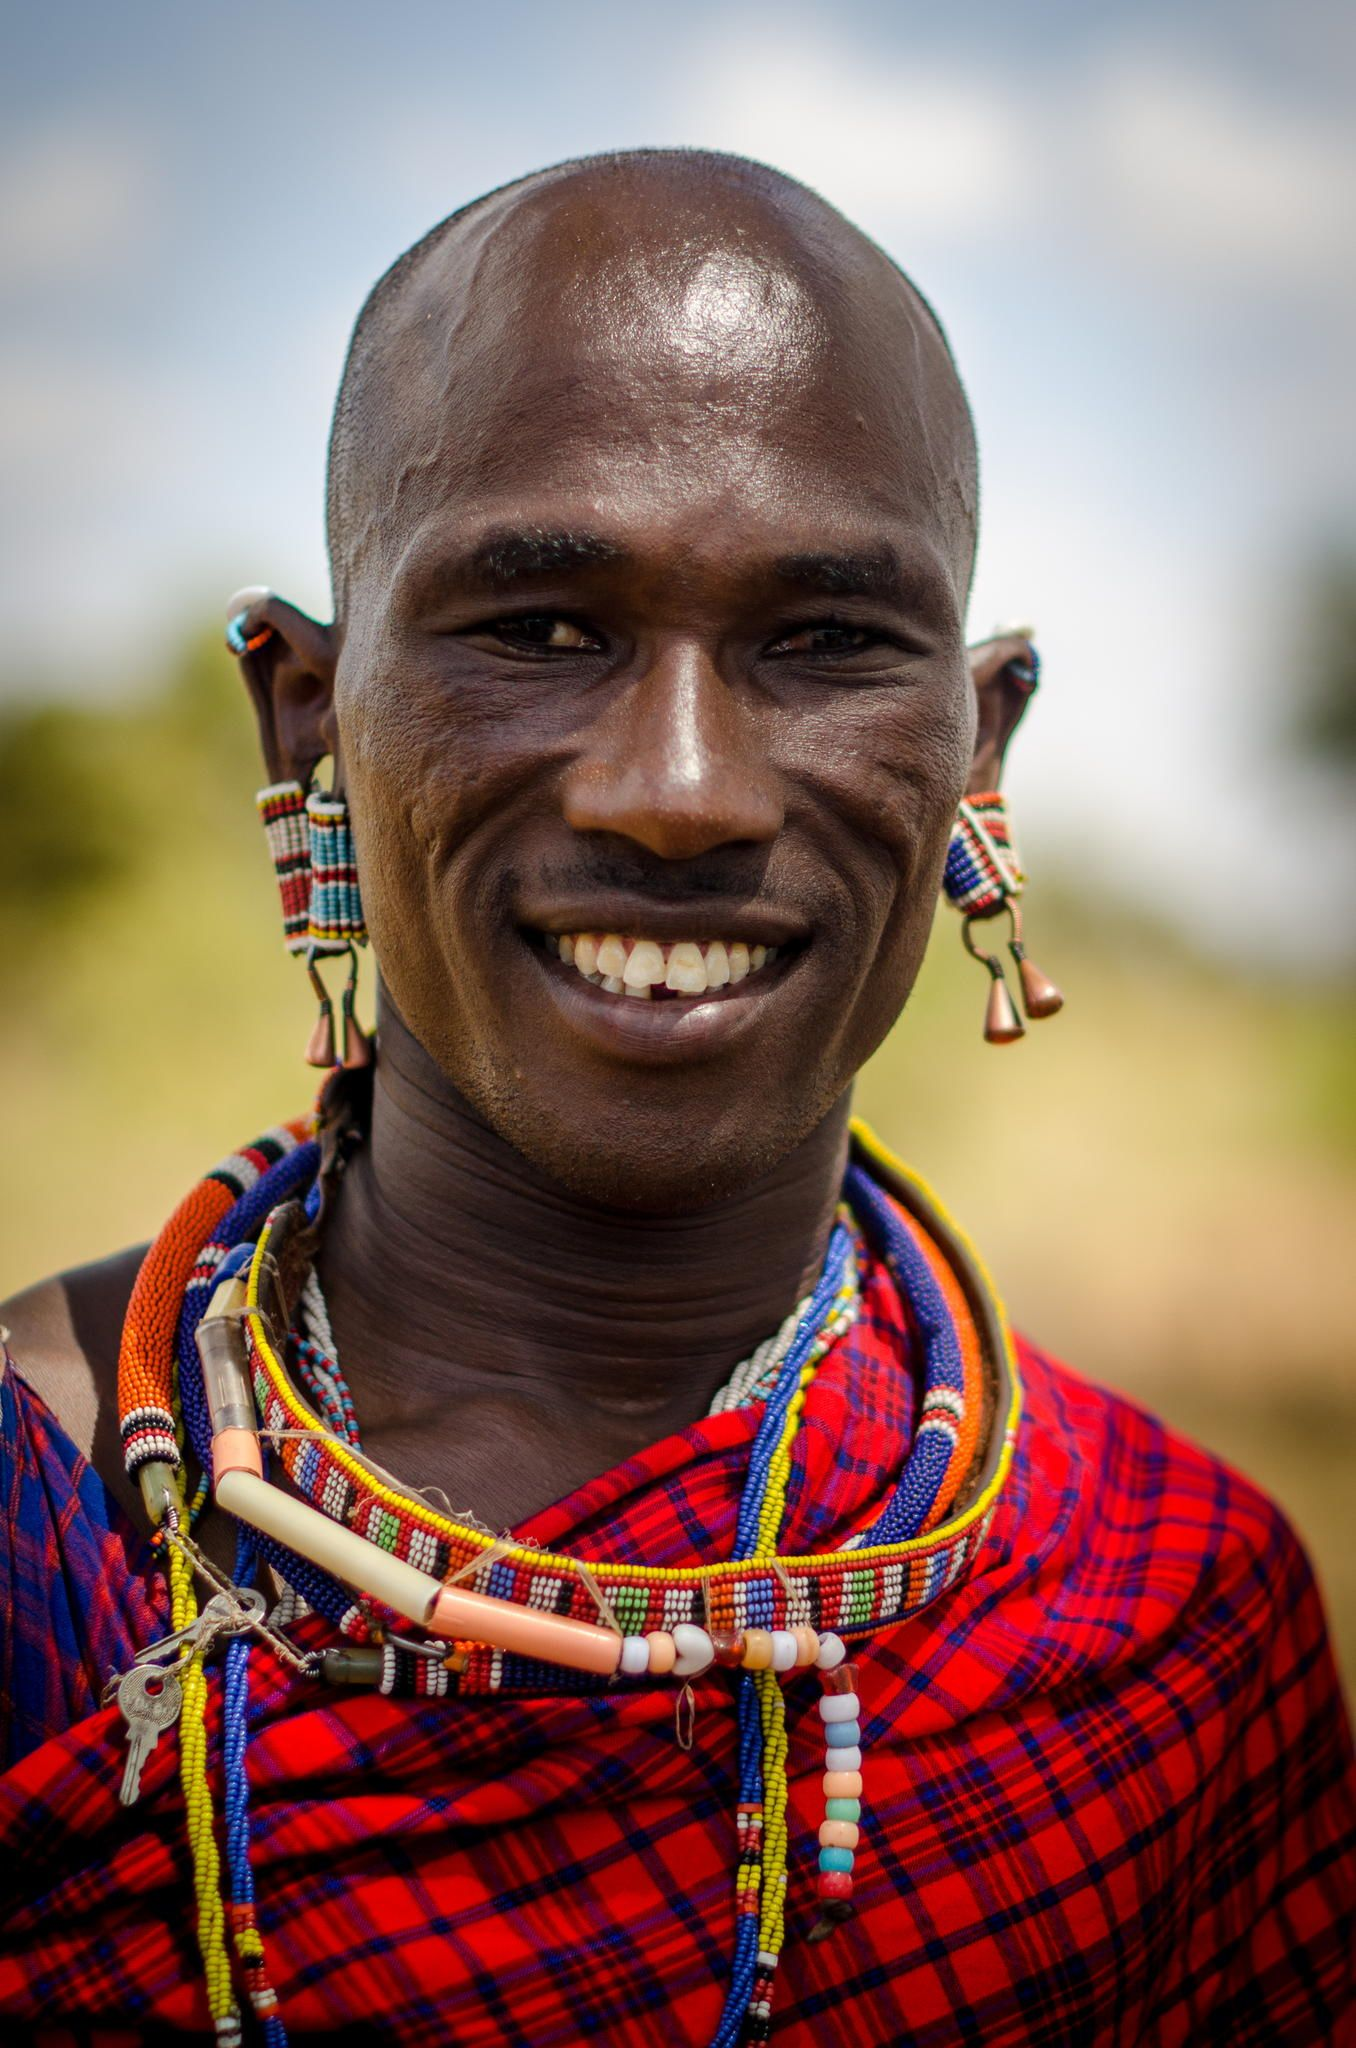 Portrait of Maasai man taken in Masai village near Amboseli ...